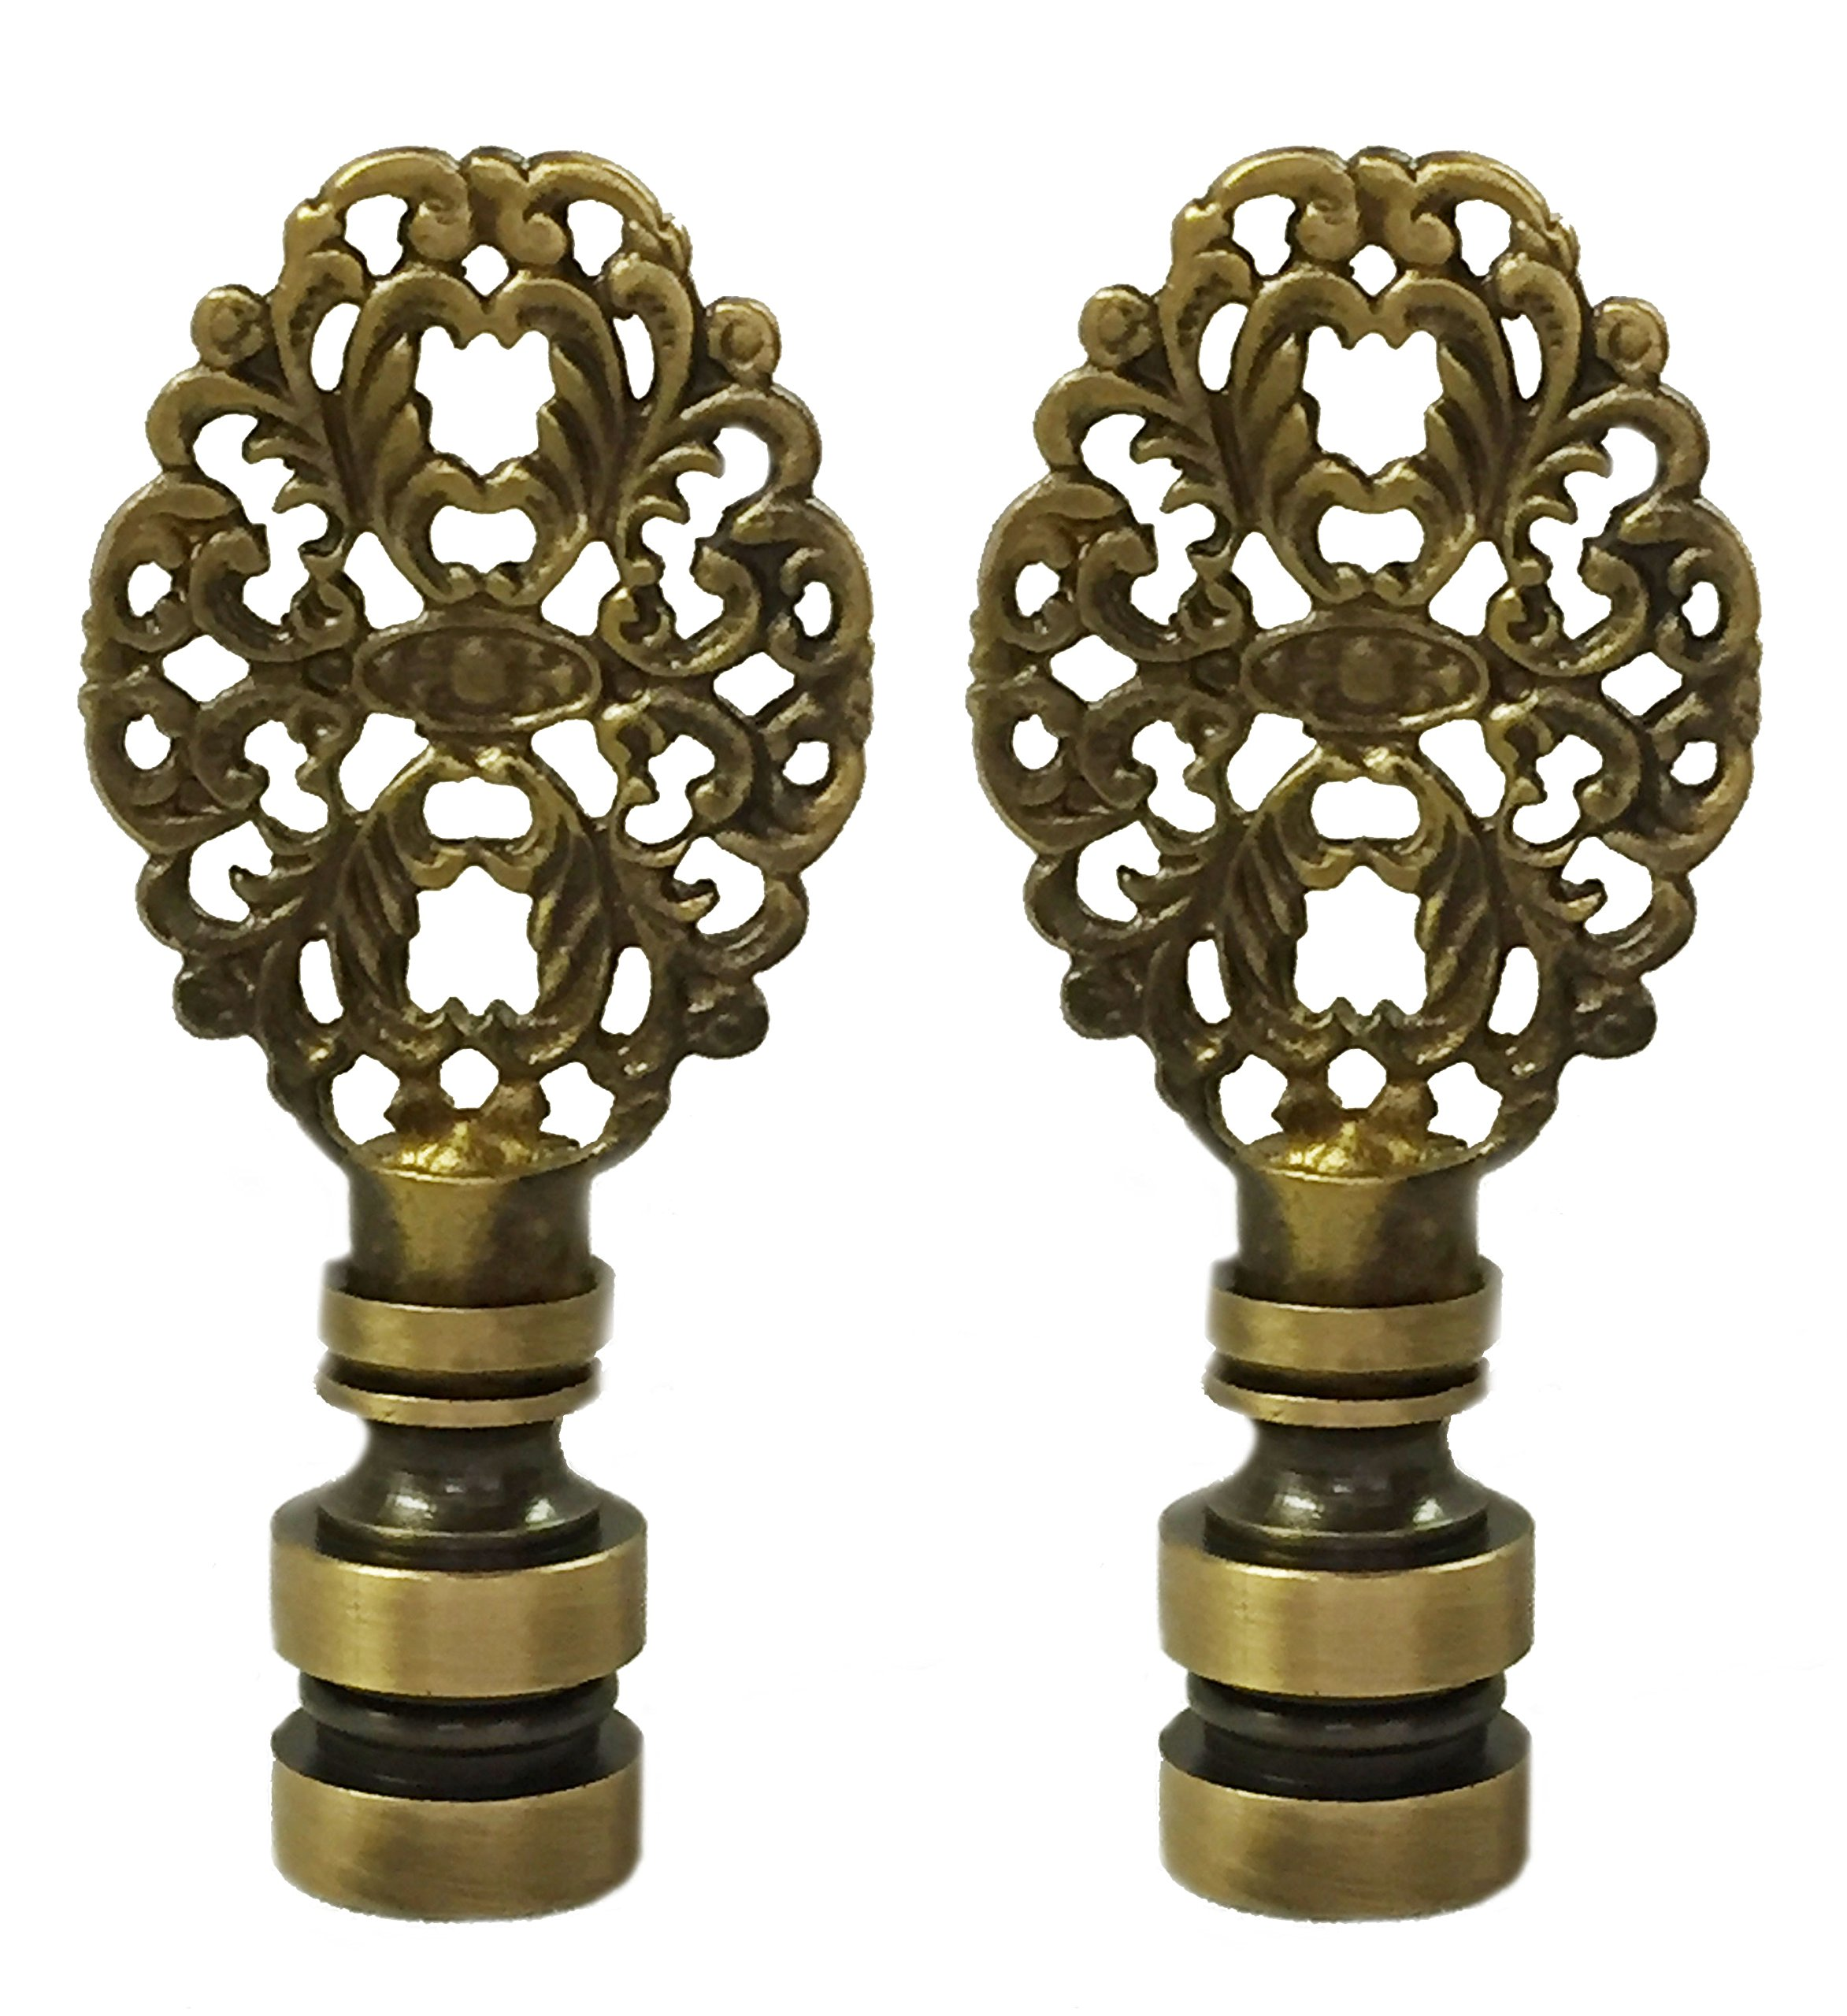 Royal Designs Oval Filigree Lamp Finial for Lamp Shade- Antique Brass Set of 2